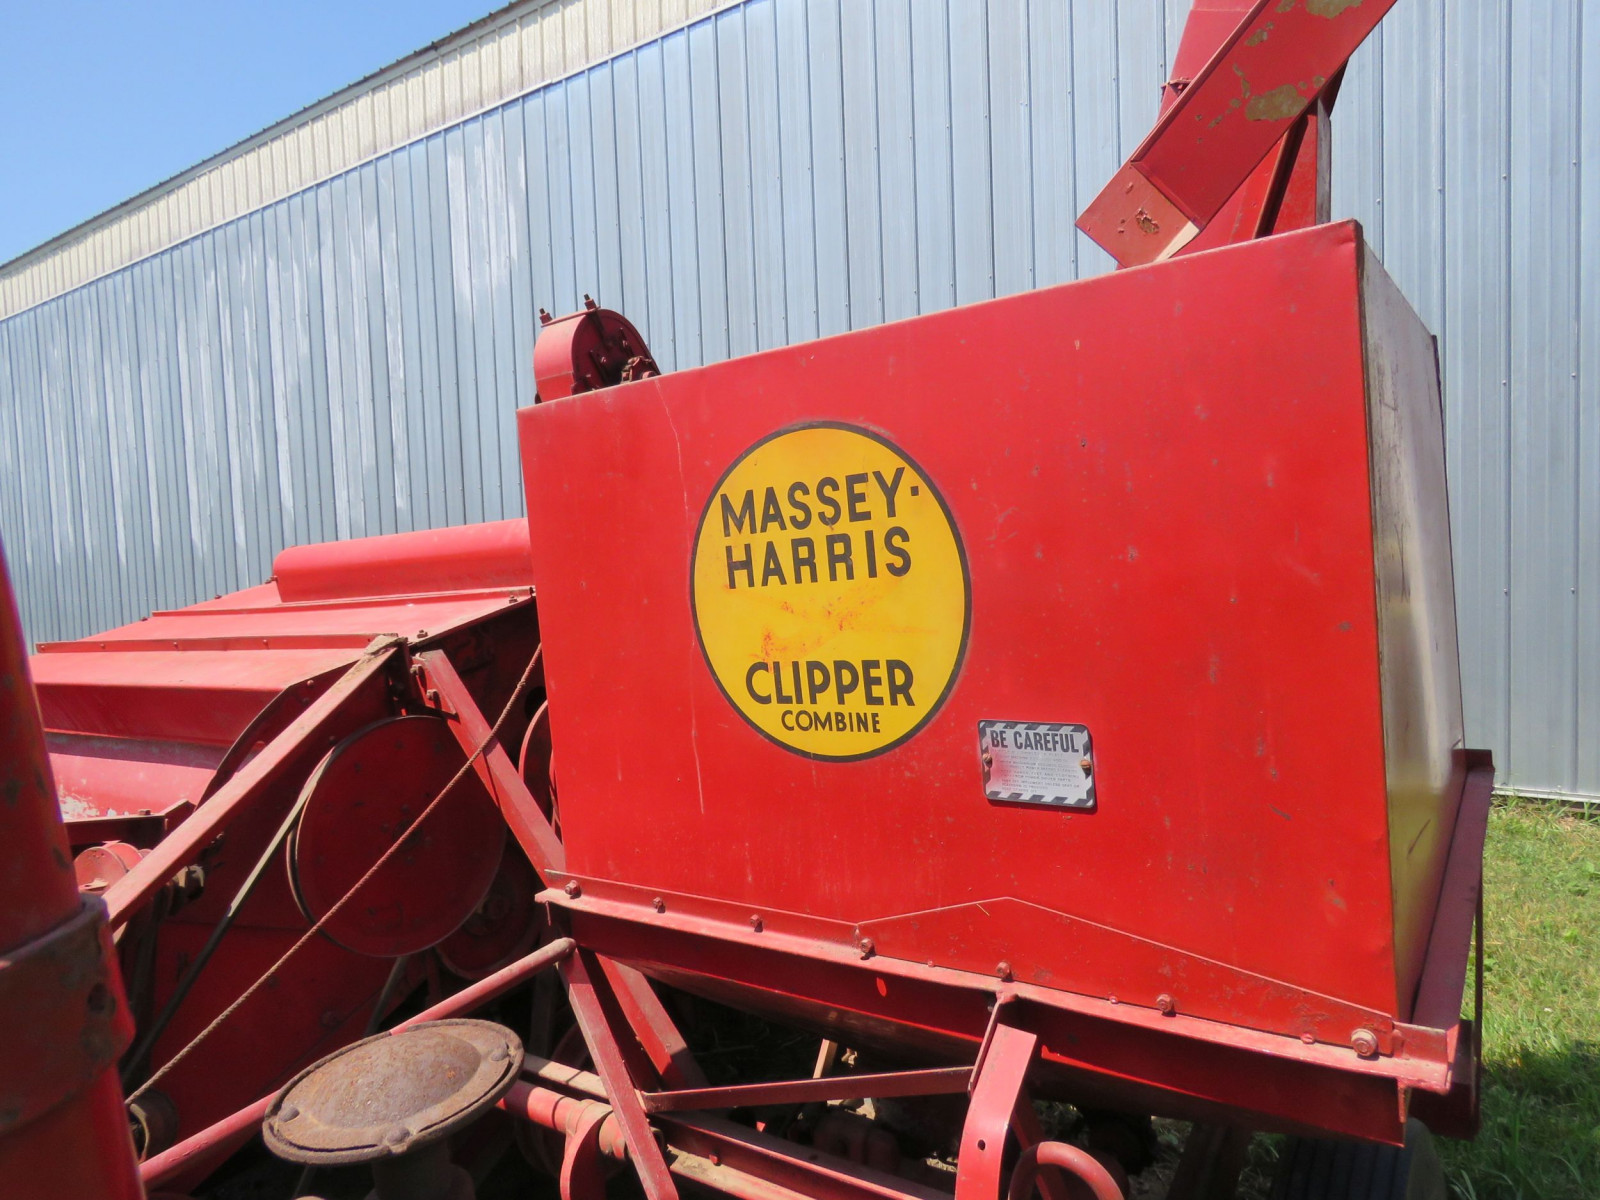 Massey Harris Clipper Combine - Image 9